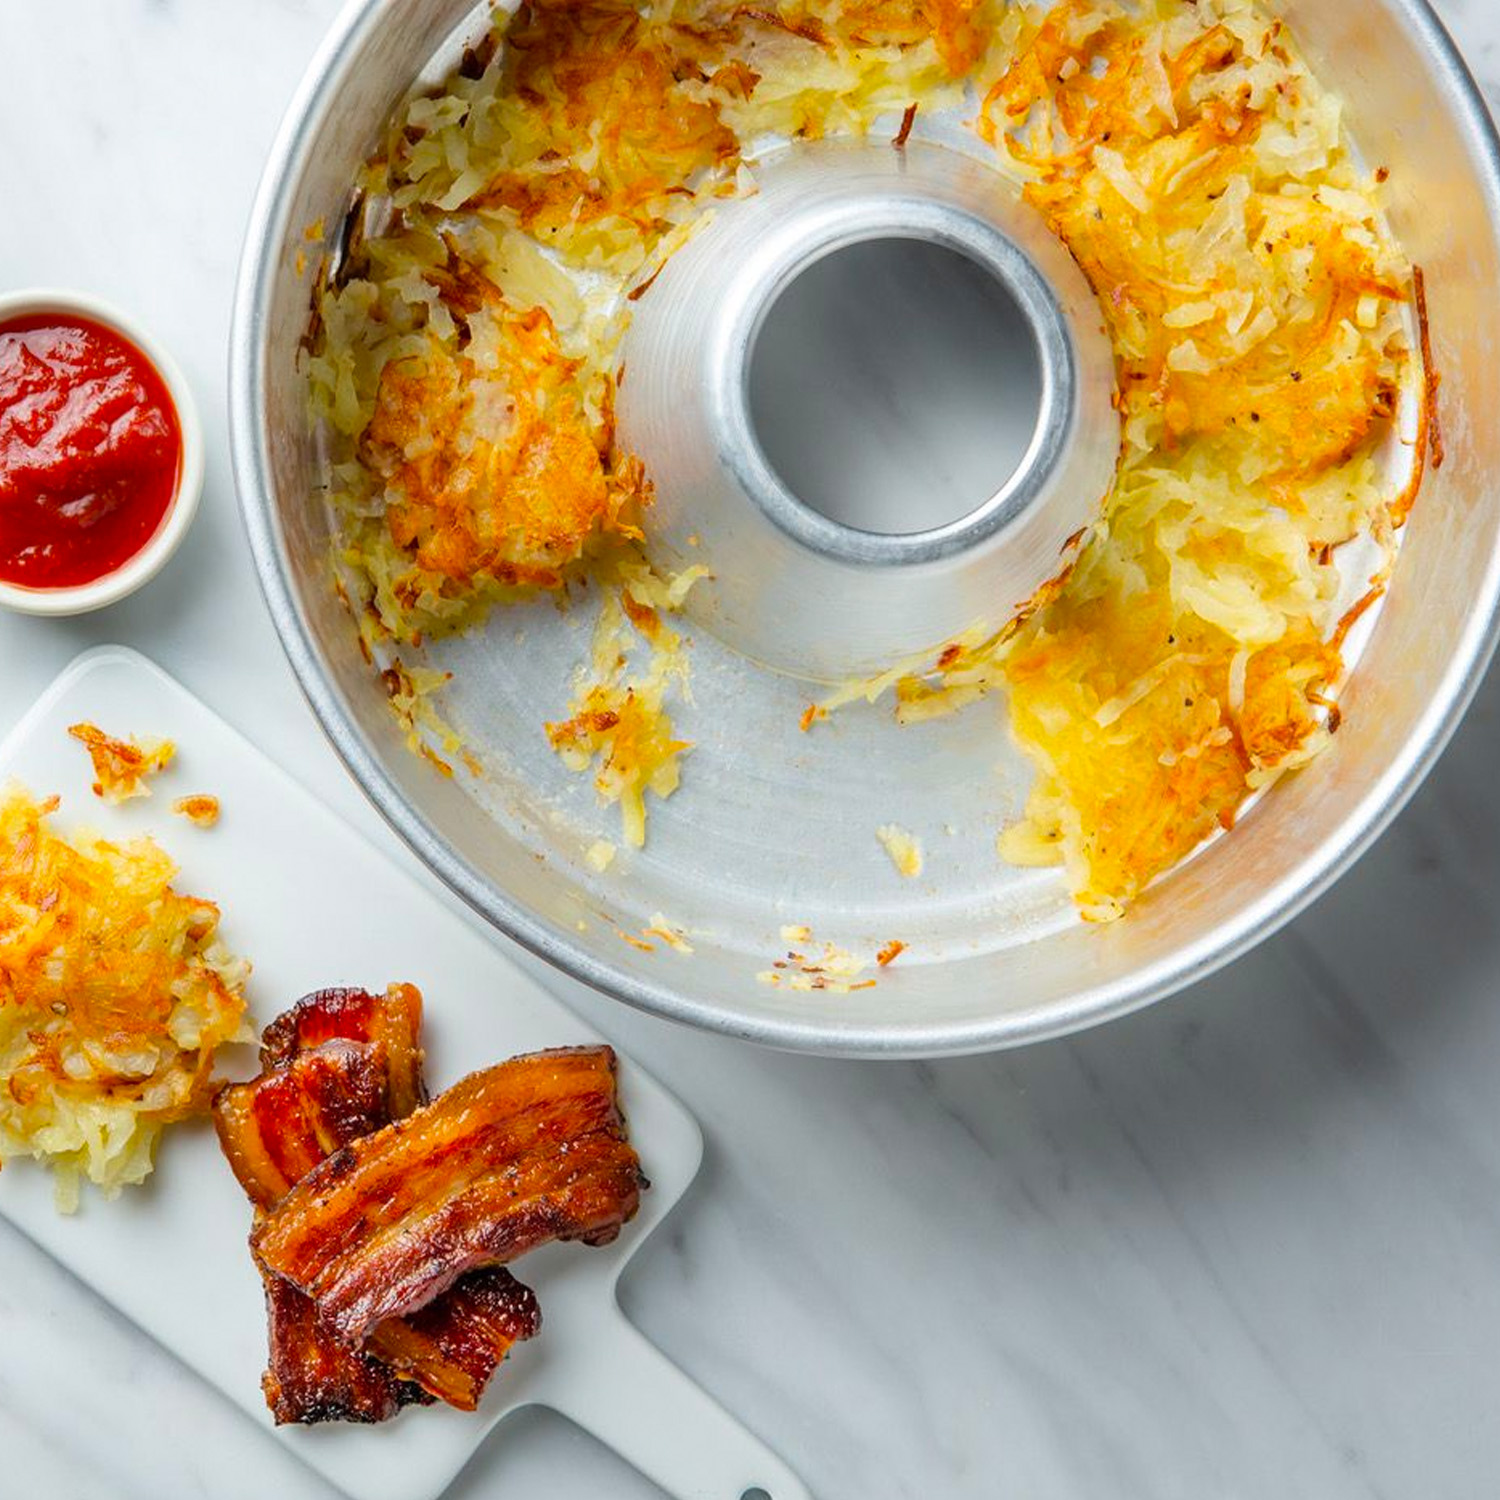 omnia oven hasbrowns